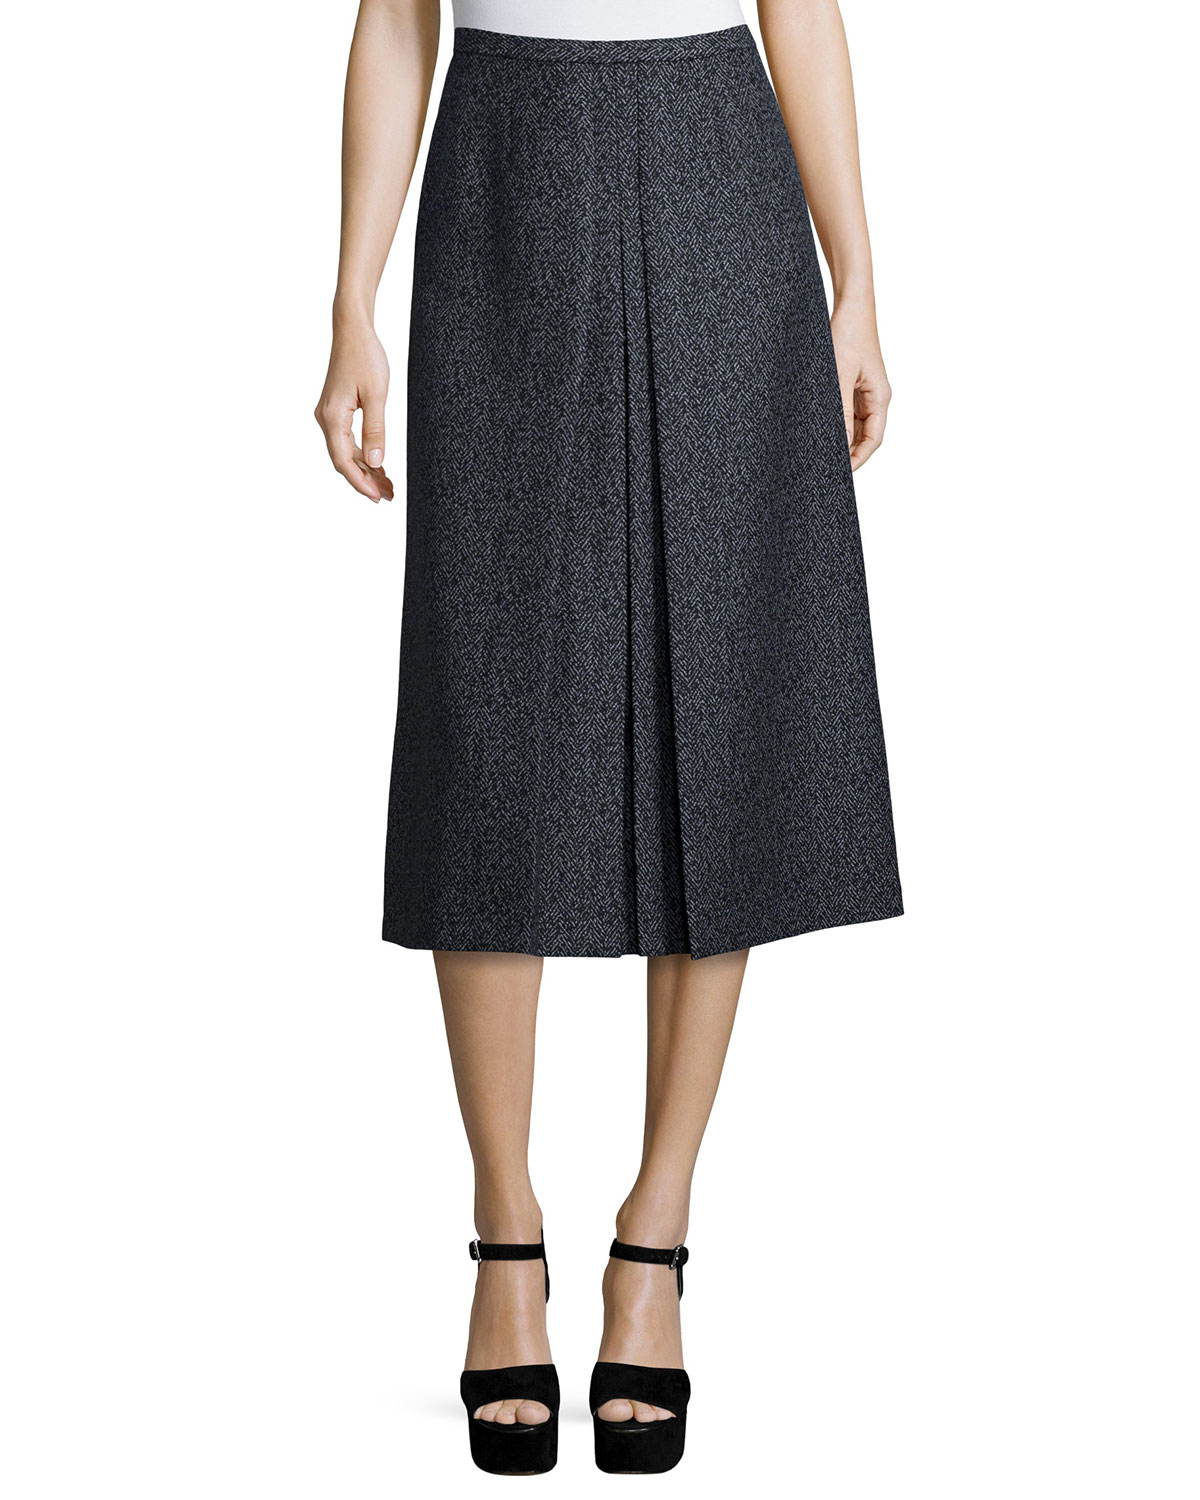 michael kors high waist a line skirt in black lyst